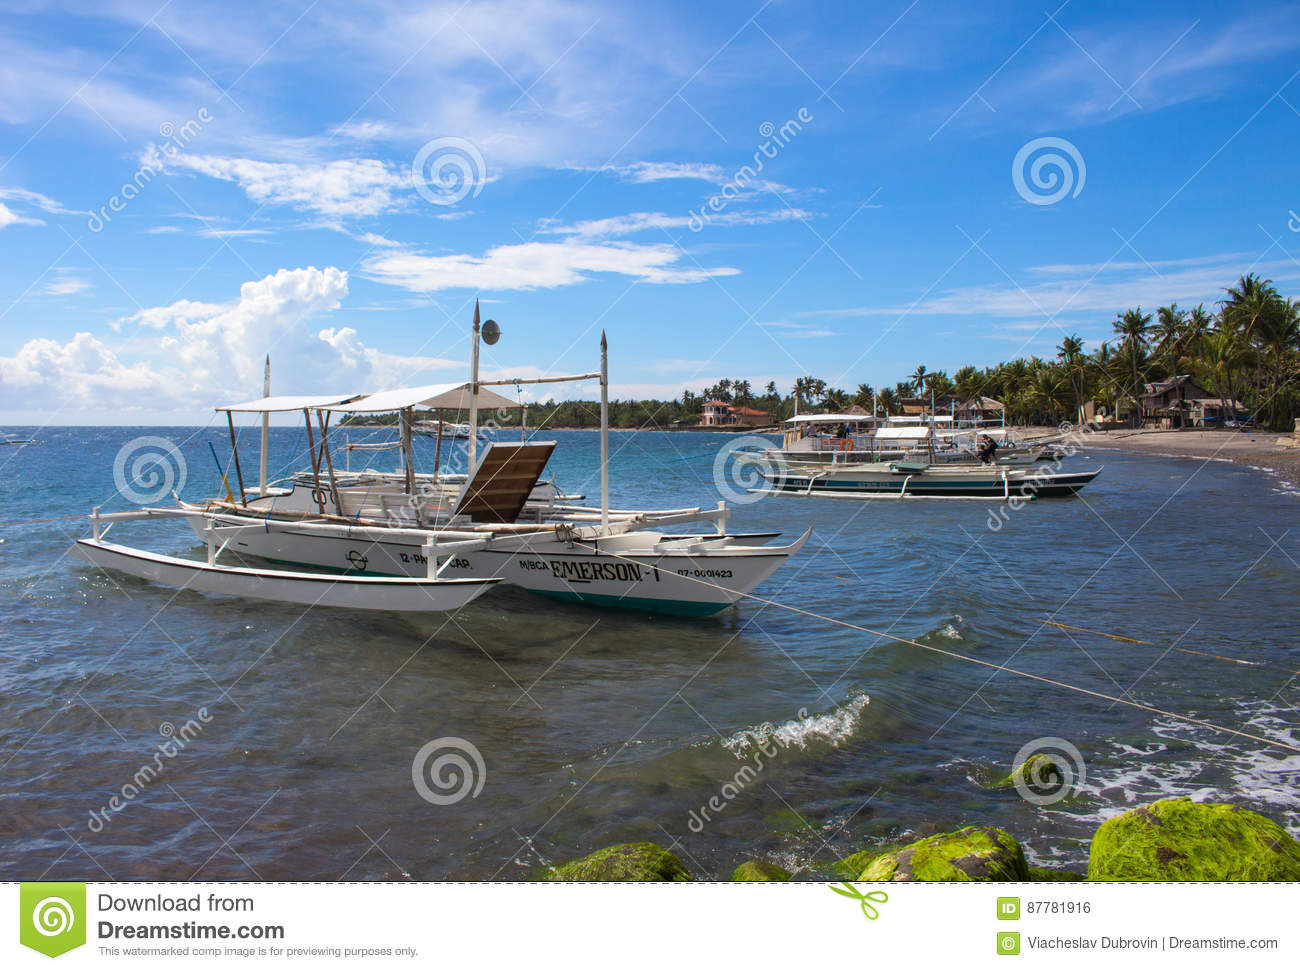 Dauin, Philippines - 26 June, 2016: Sea and the boats moored near the shore